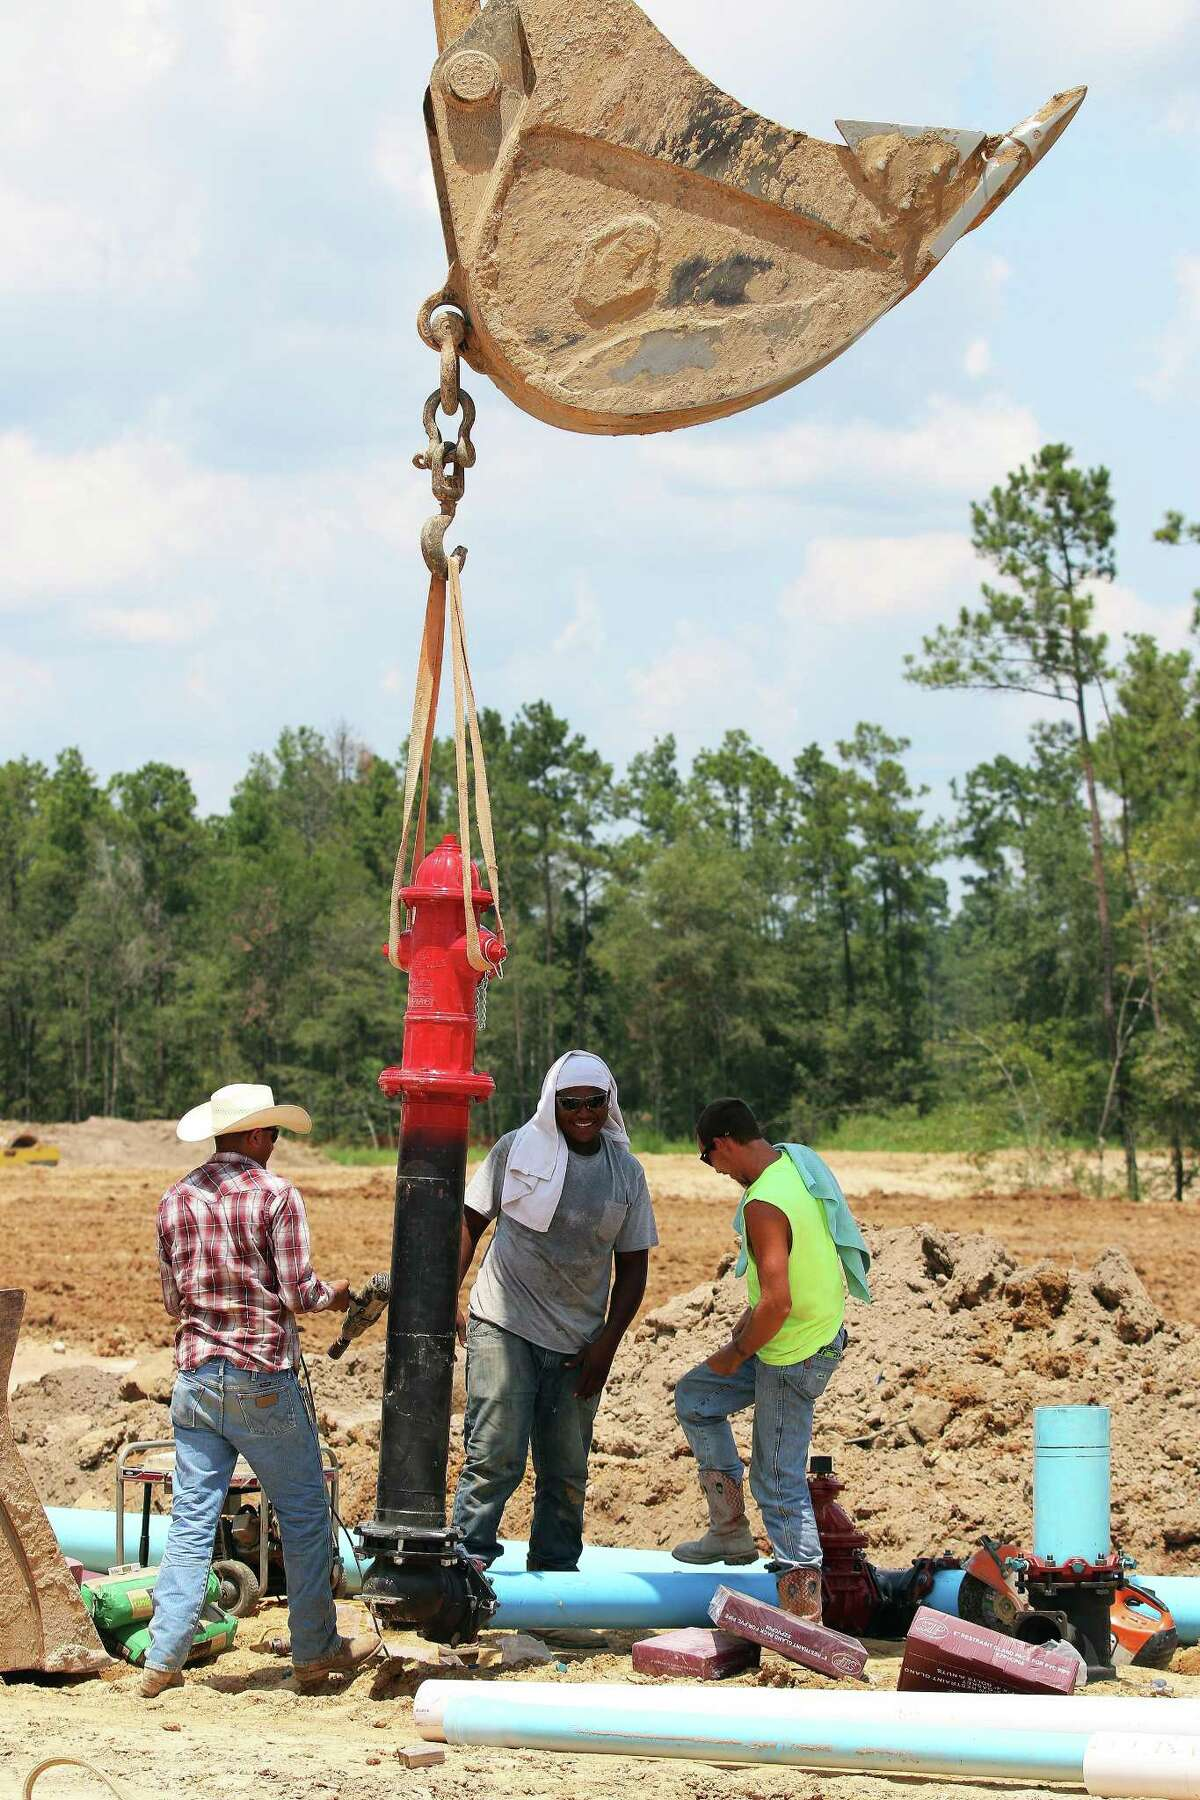 Contractors carefully maneuver one of the many fire hydrants for the Grand Oaks Reserve subdivision to be placed into the ground and connected to underground infrastructure.